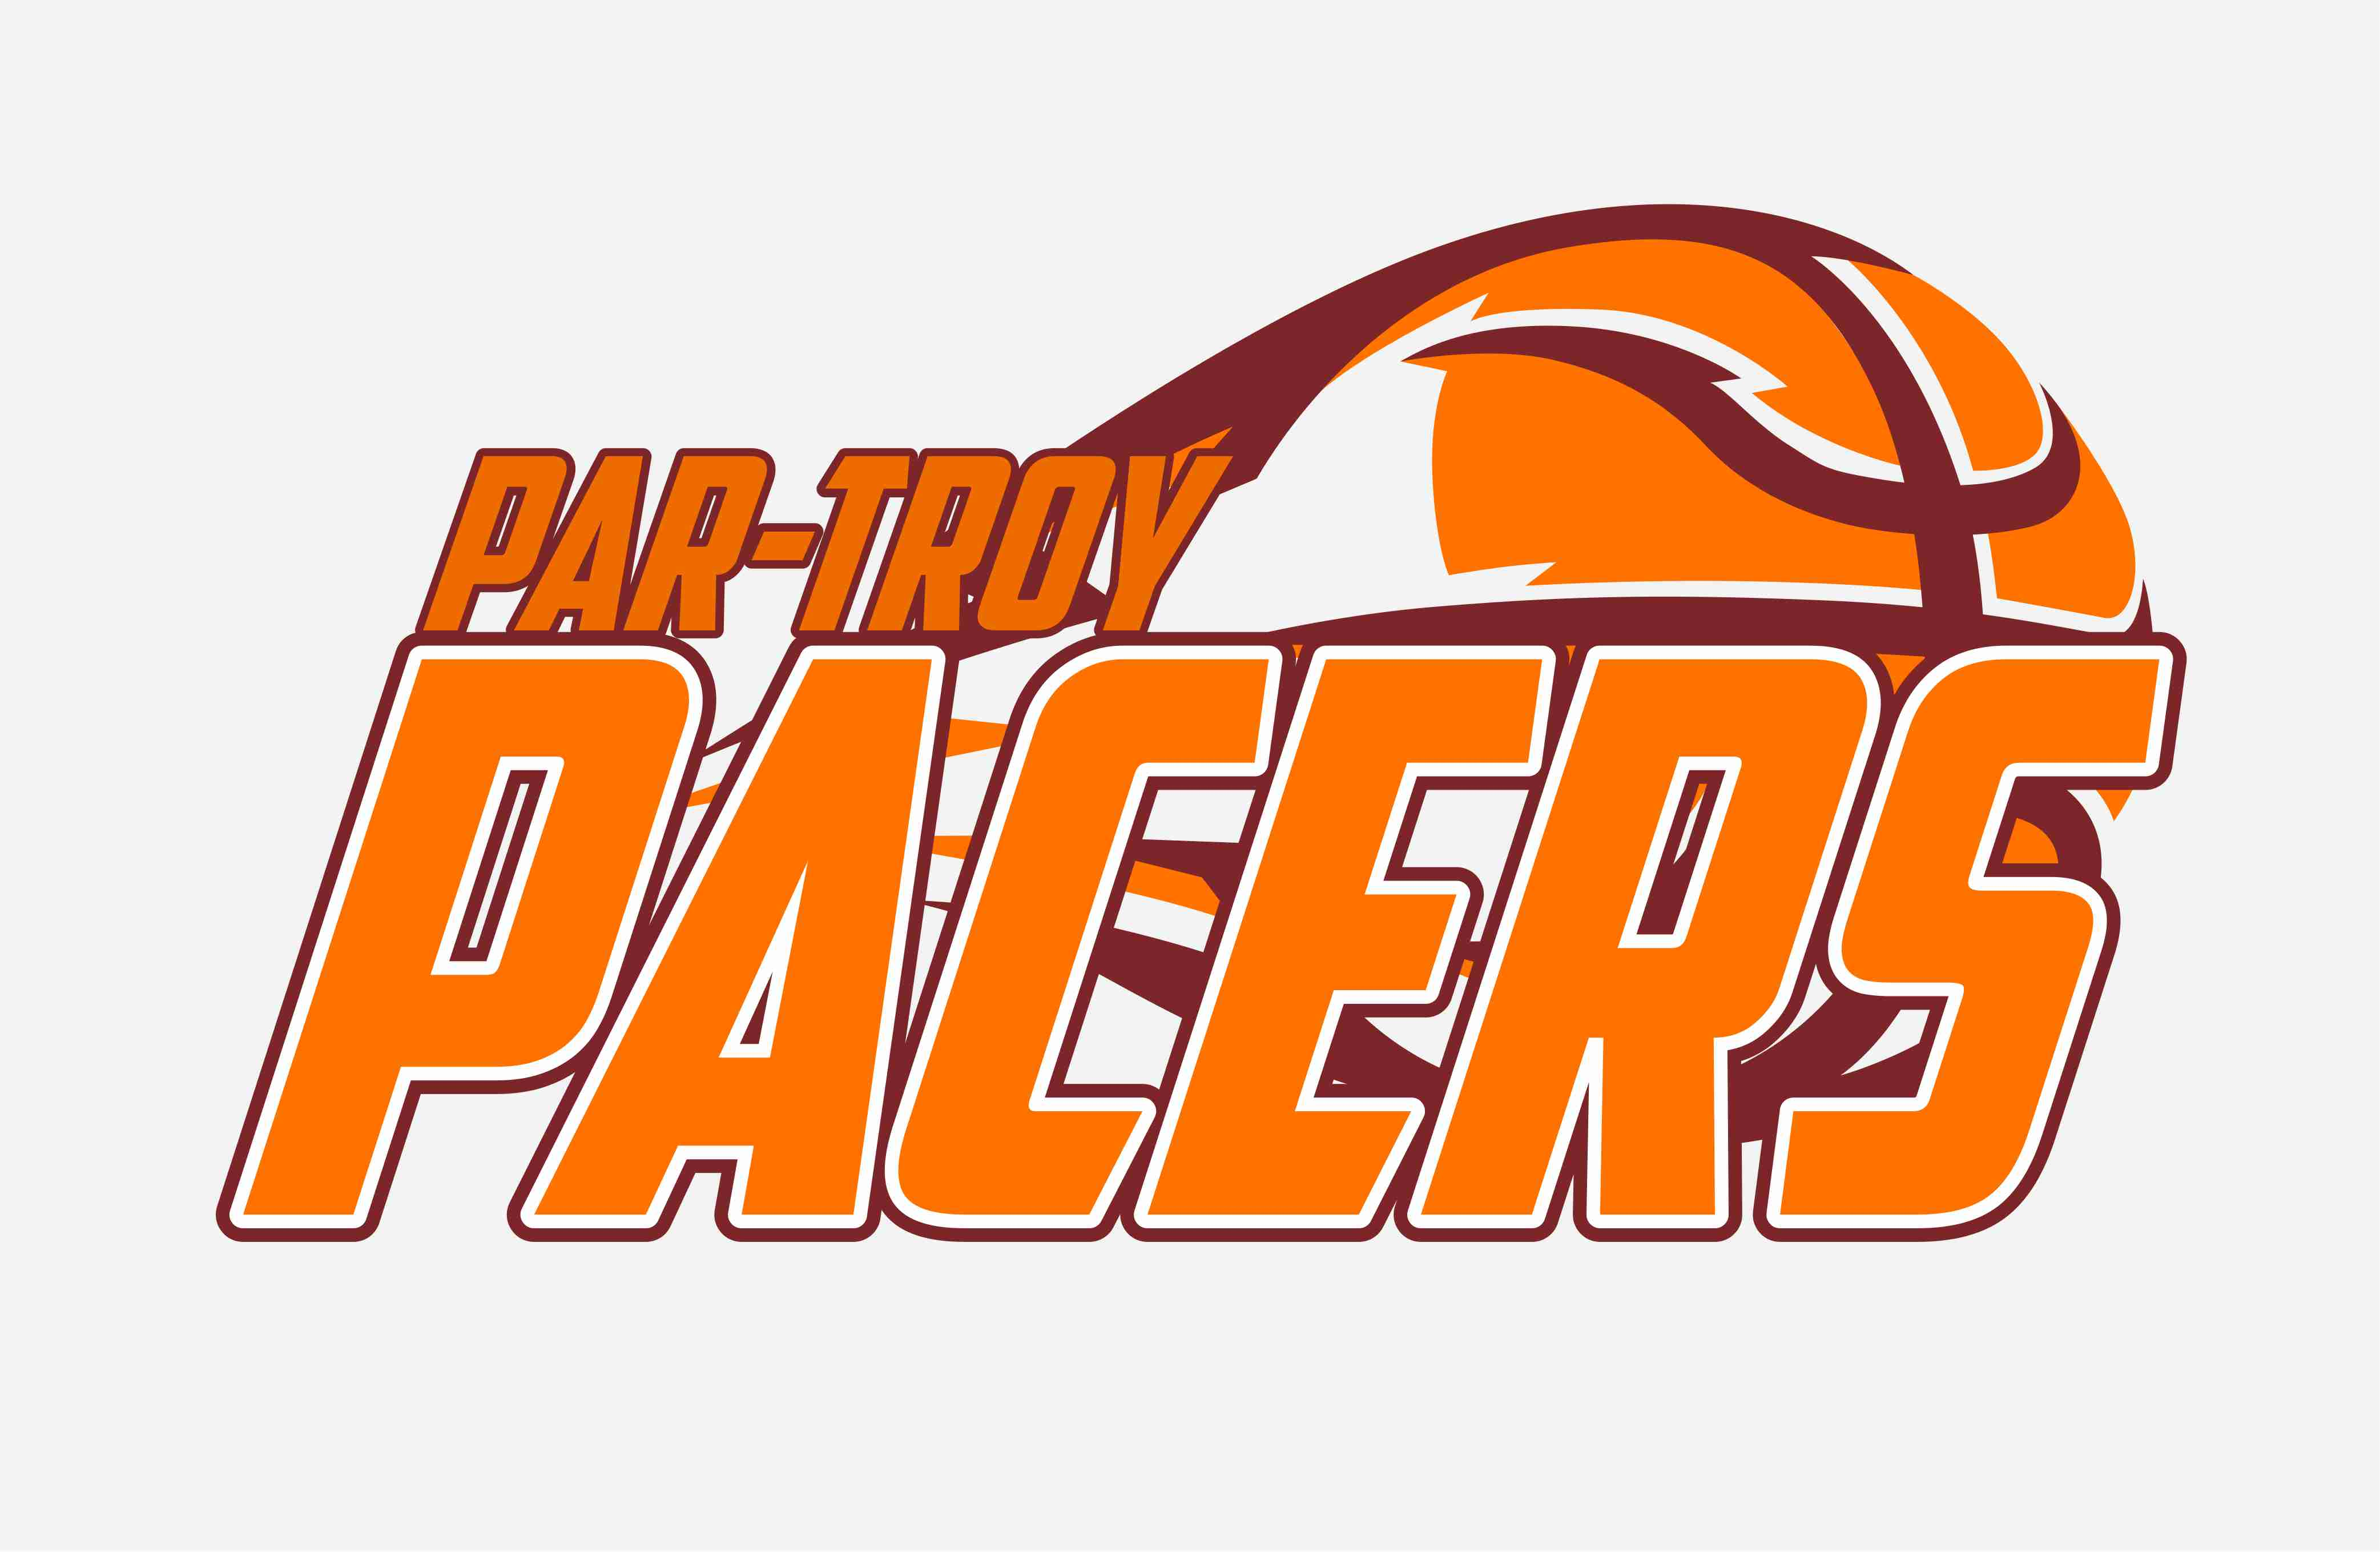 Par Troy Pacers Basketball